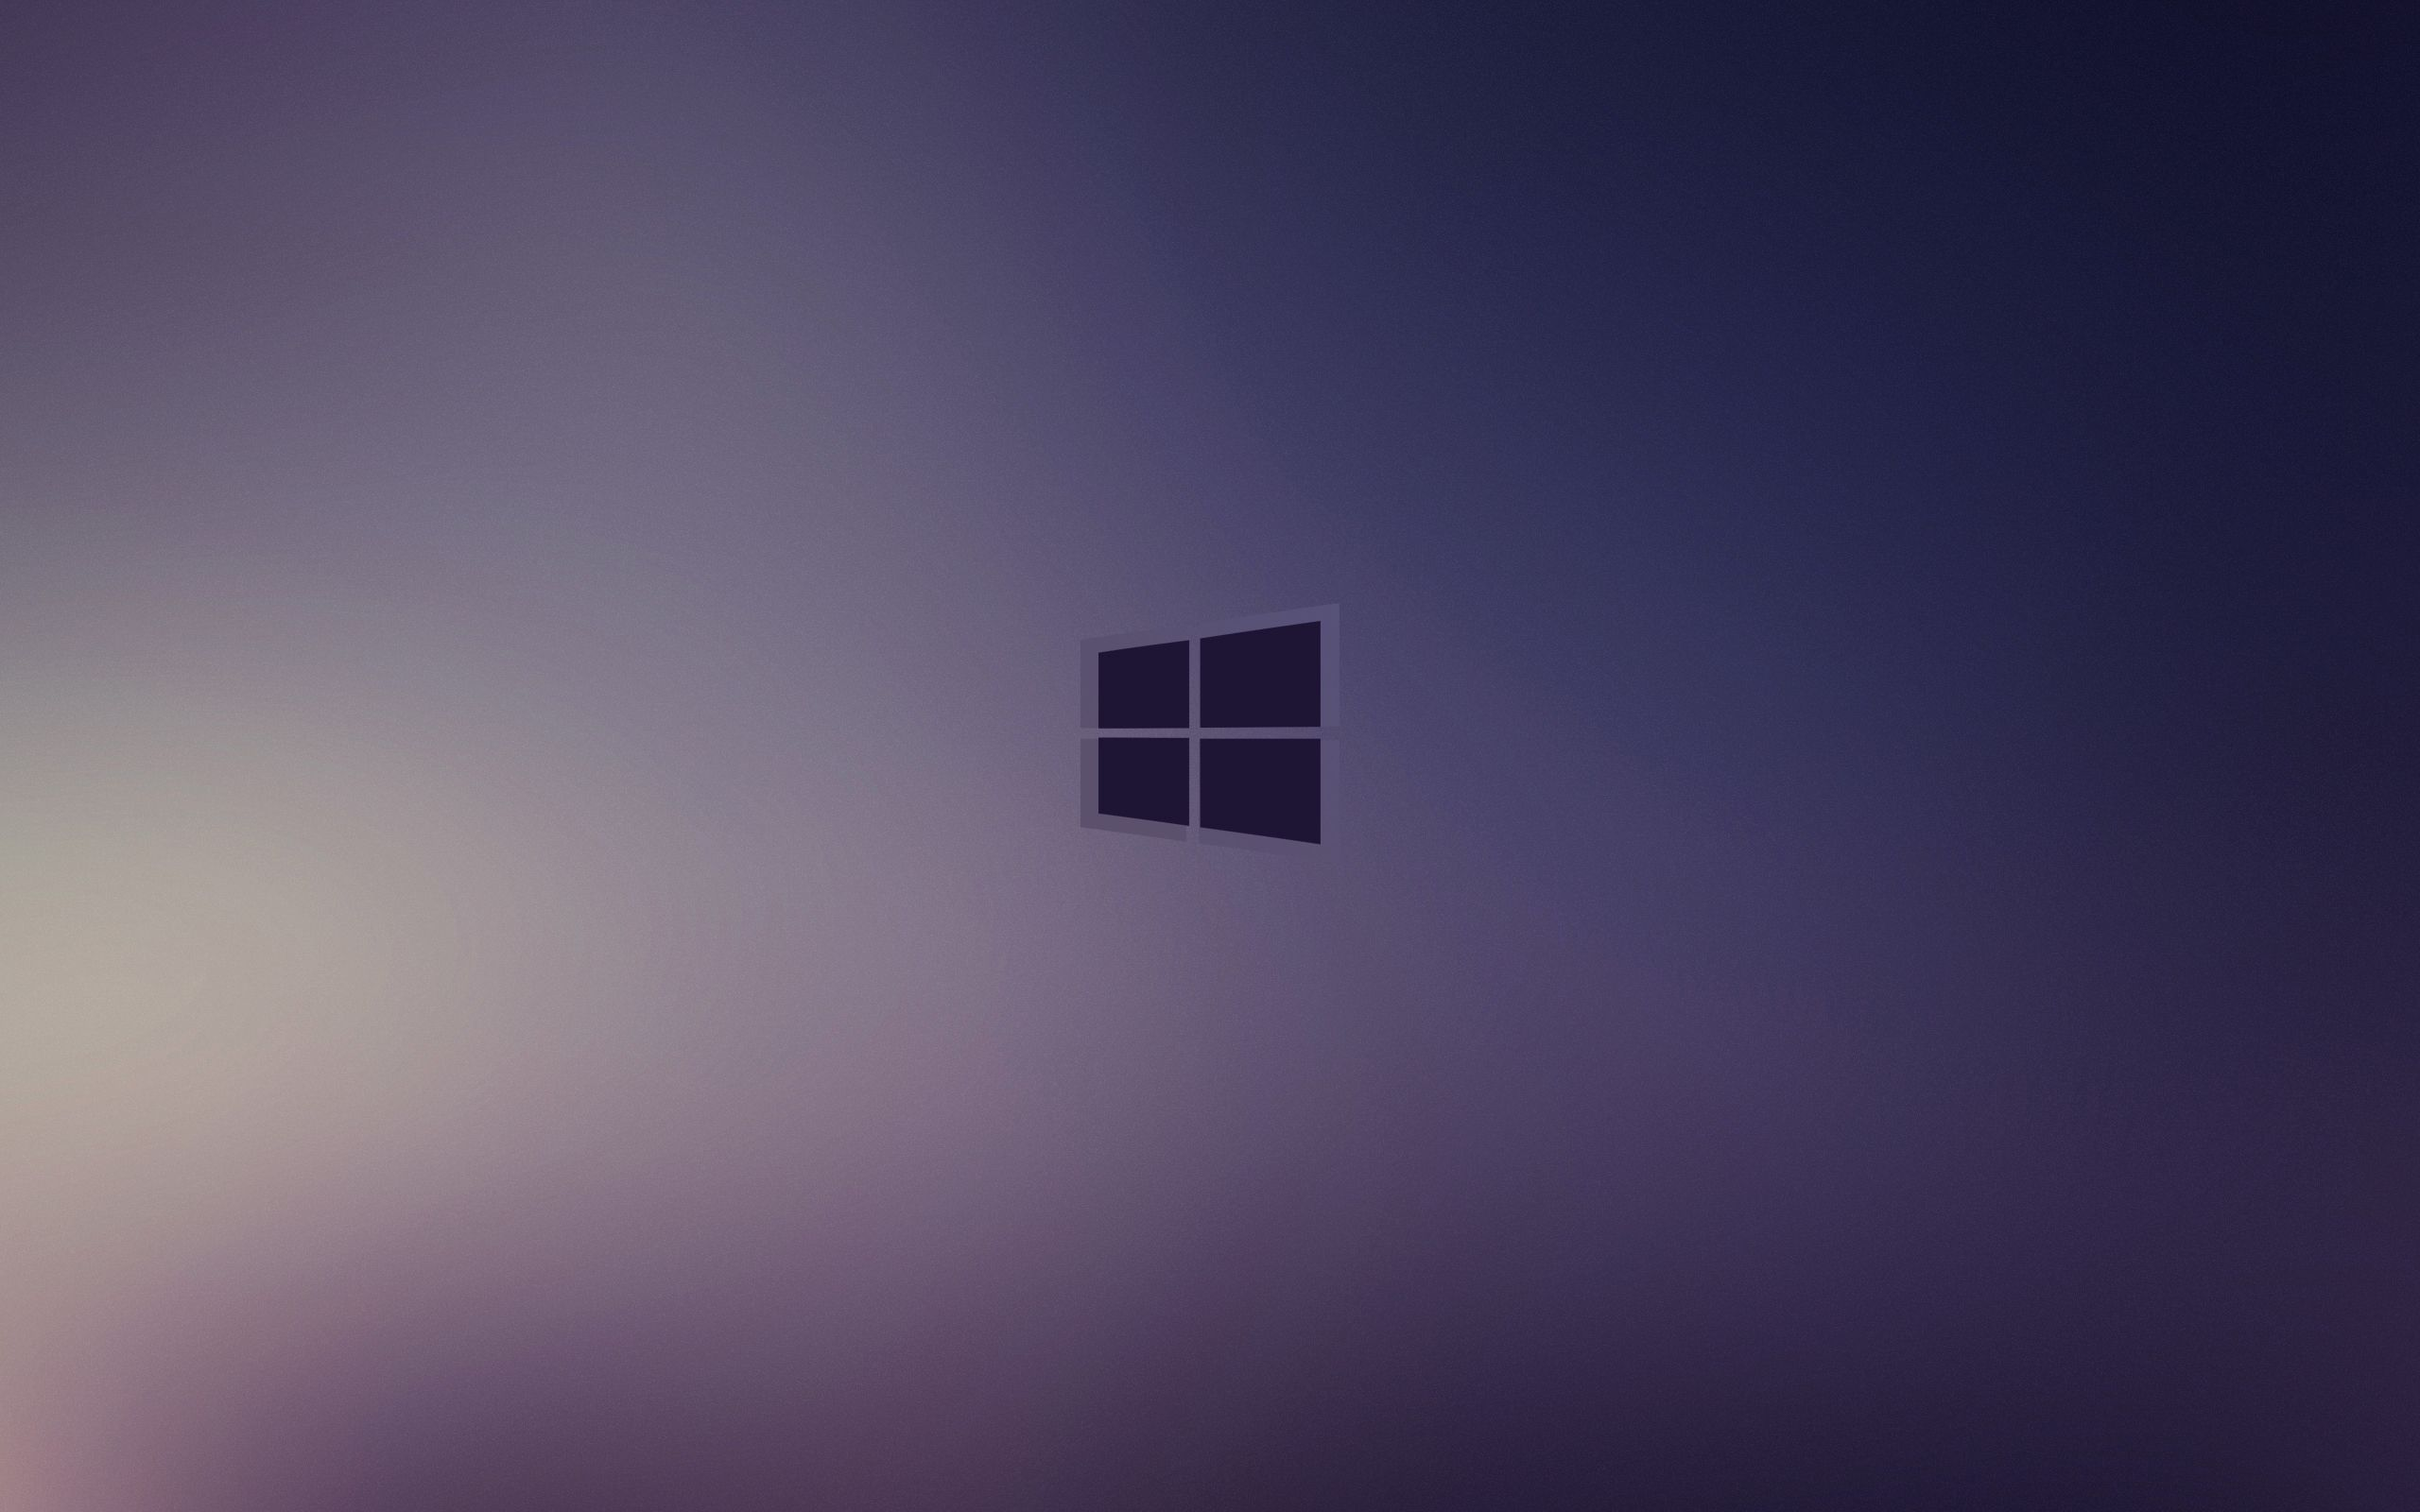 Windows 10 Minimal Hd Wallpaper 2018 Papel De Parede Pc Papel De Parede Computador Planos De Fundo Hd